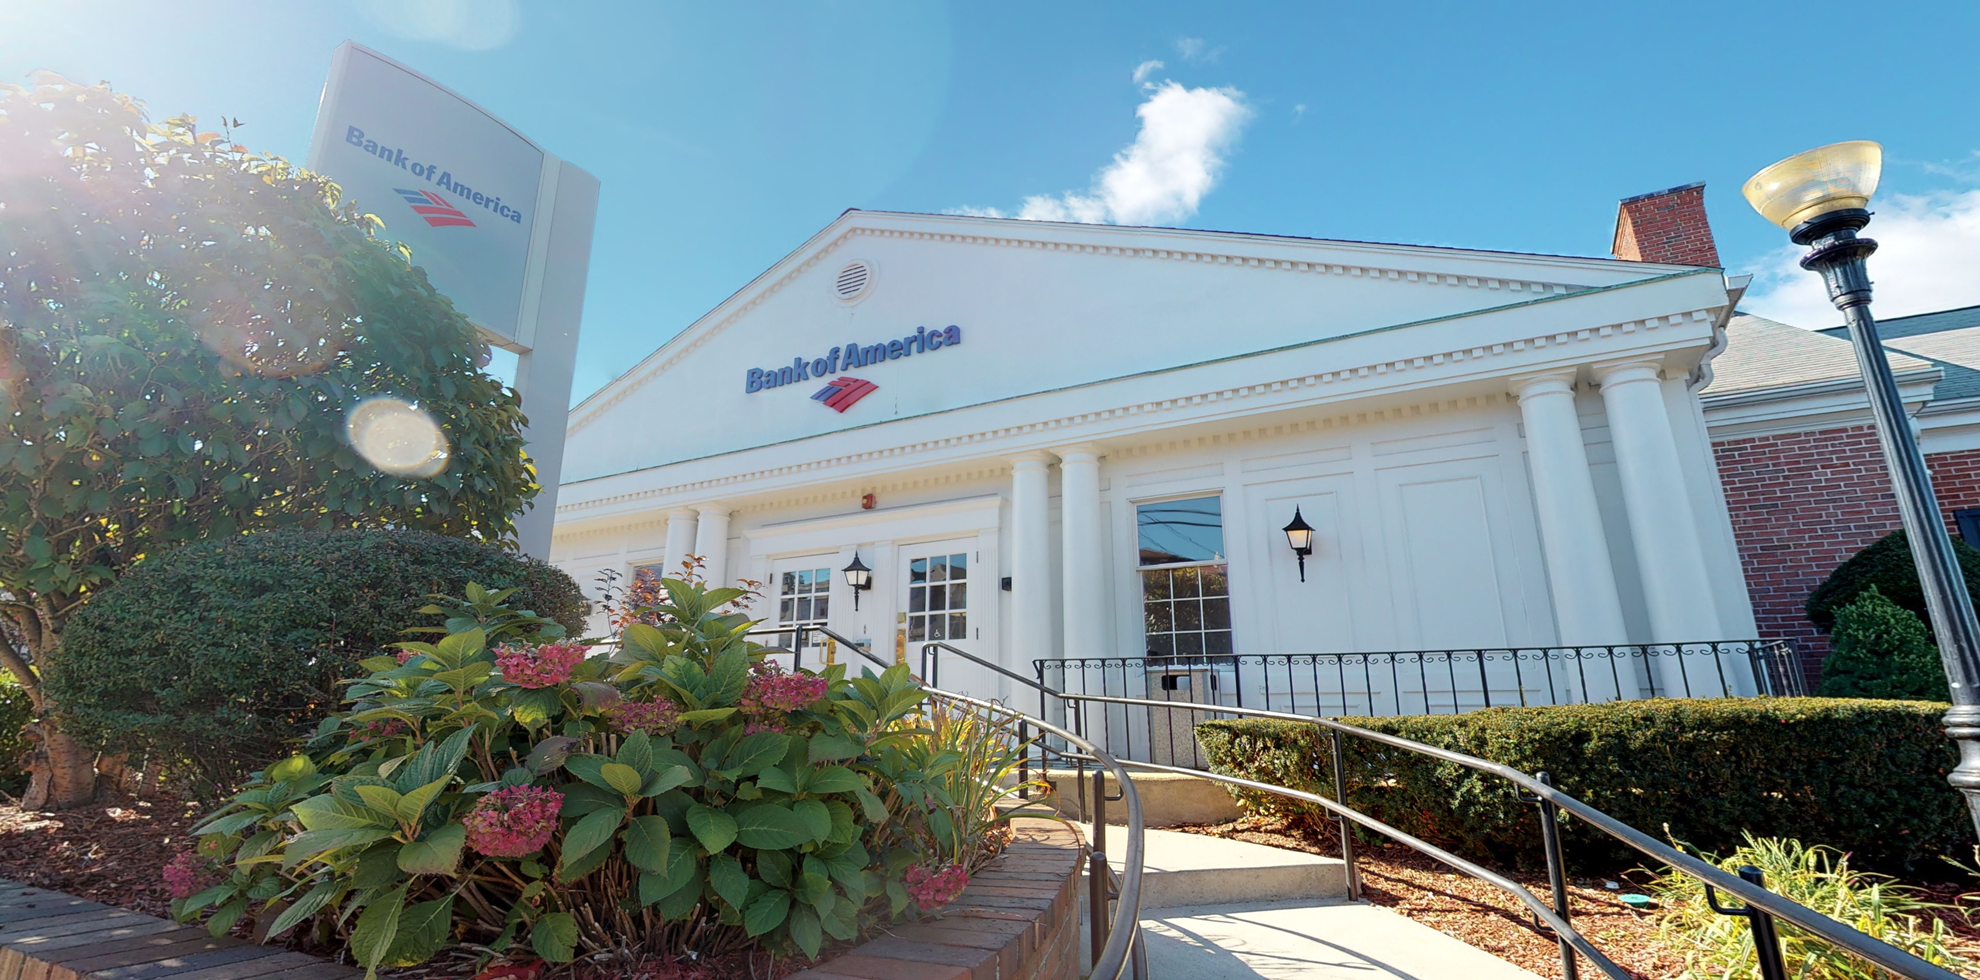 Bank of America financial center with walk-up ATM   25 Bartlett Rd, Winthrop, MA 02152